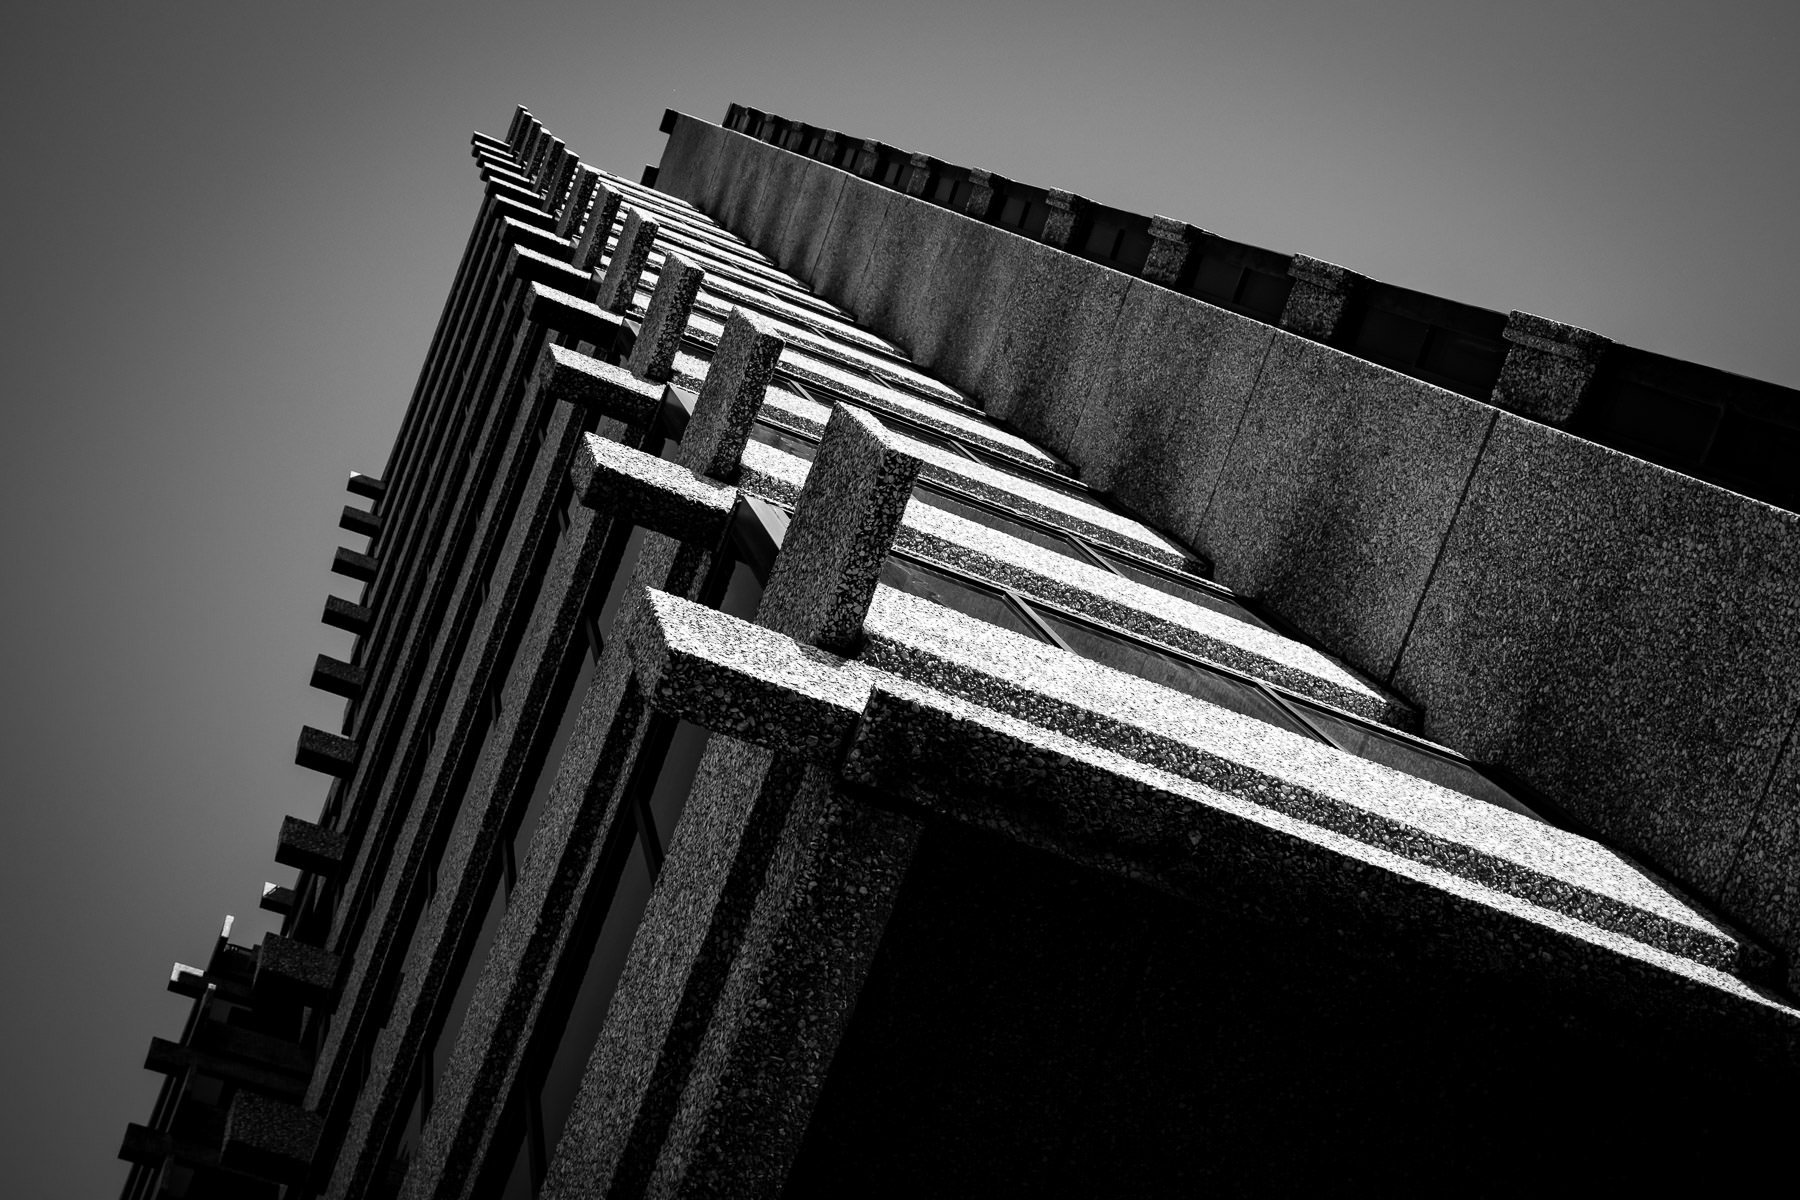 Architectural detail of the Pegasus Villas residential tower in Dallas, Texas.